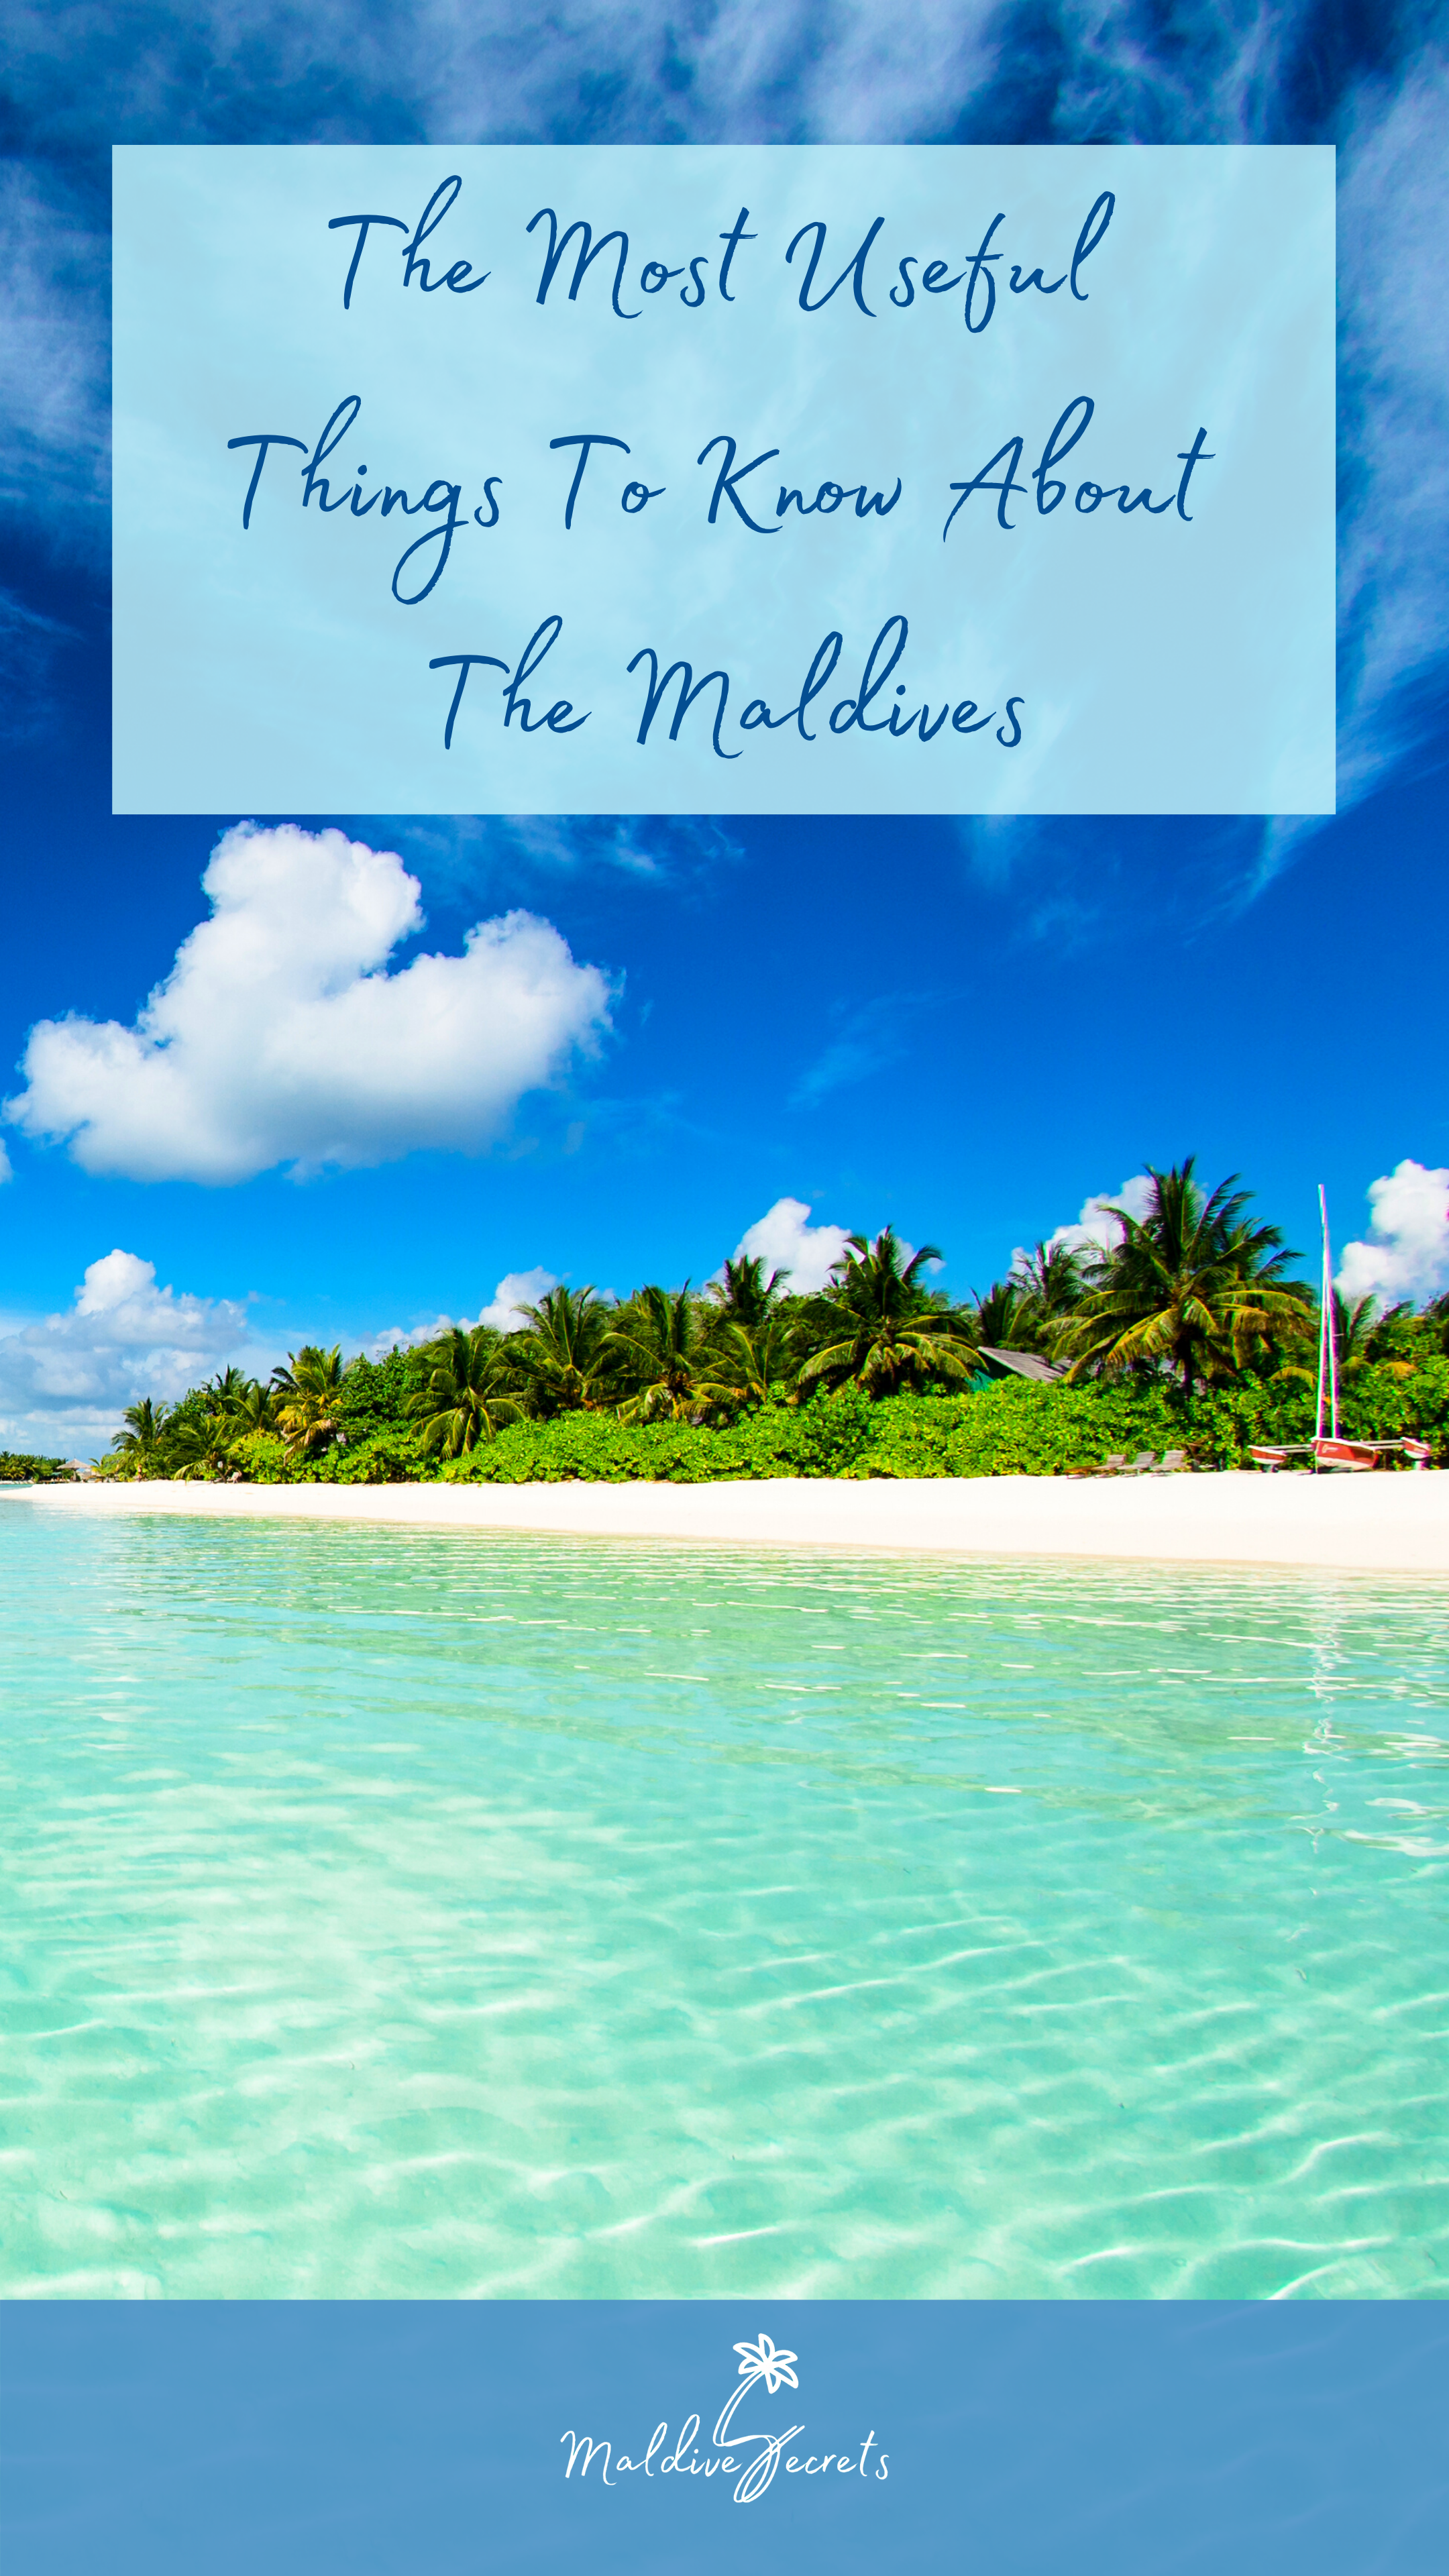 Are you heading to paradise soon? We are so excited for you! That's why we've prepared this detailed guide explaining the things you need to know before travelling to The Maldives! #maldives #maldivessecrets #affordablemaldives #travelagency #budgettravel #traveldeals #maldivesholiday #tropicalholidays #maldiveshotels #maldivesblog #maldivestrip #budgetmaldives #maldivestour #lowcosttrips #maldivespackage #visitmaldives #budgetmaldivestravel